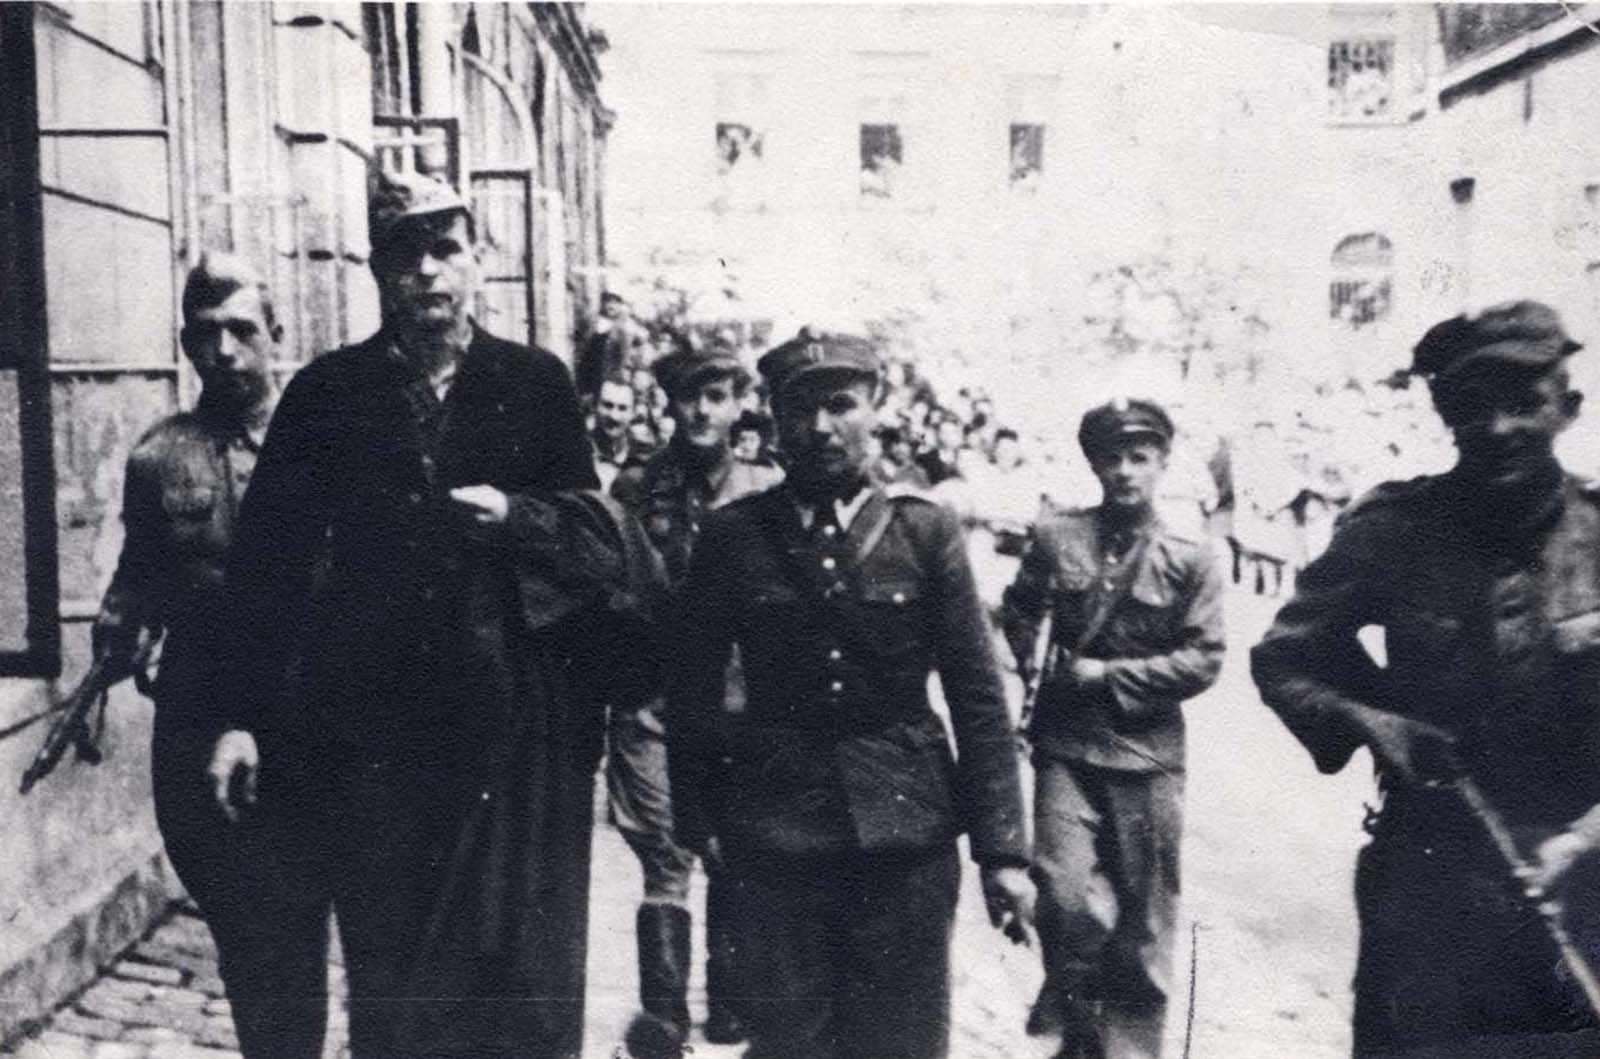 At 6 foot 4 inches tall (194 cm), Goeth towered over his Polish guards.